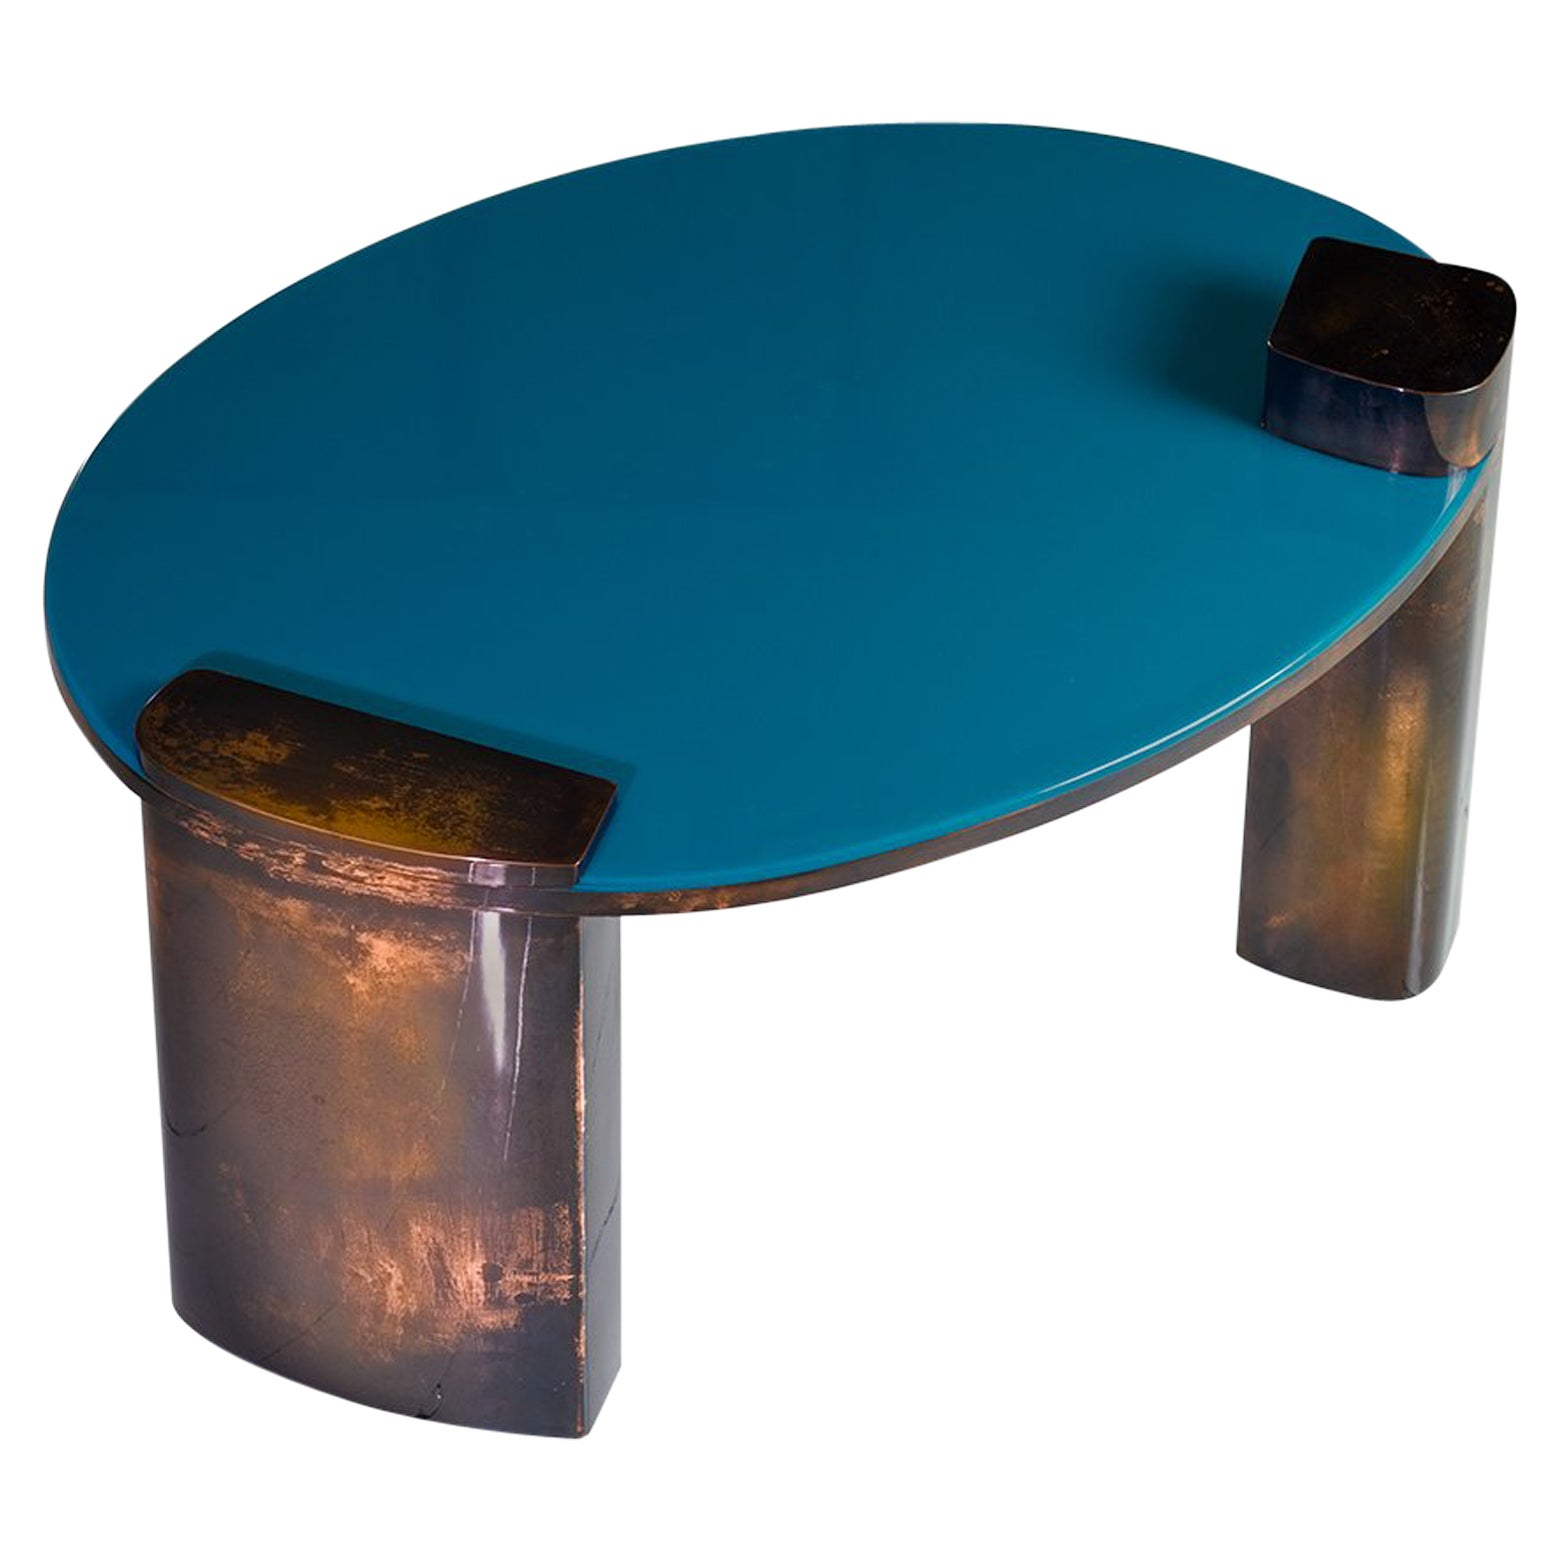 Blue Moon Table with Hand Patinated Copper Legs and Blue Resin Top